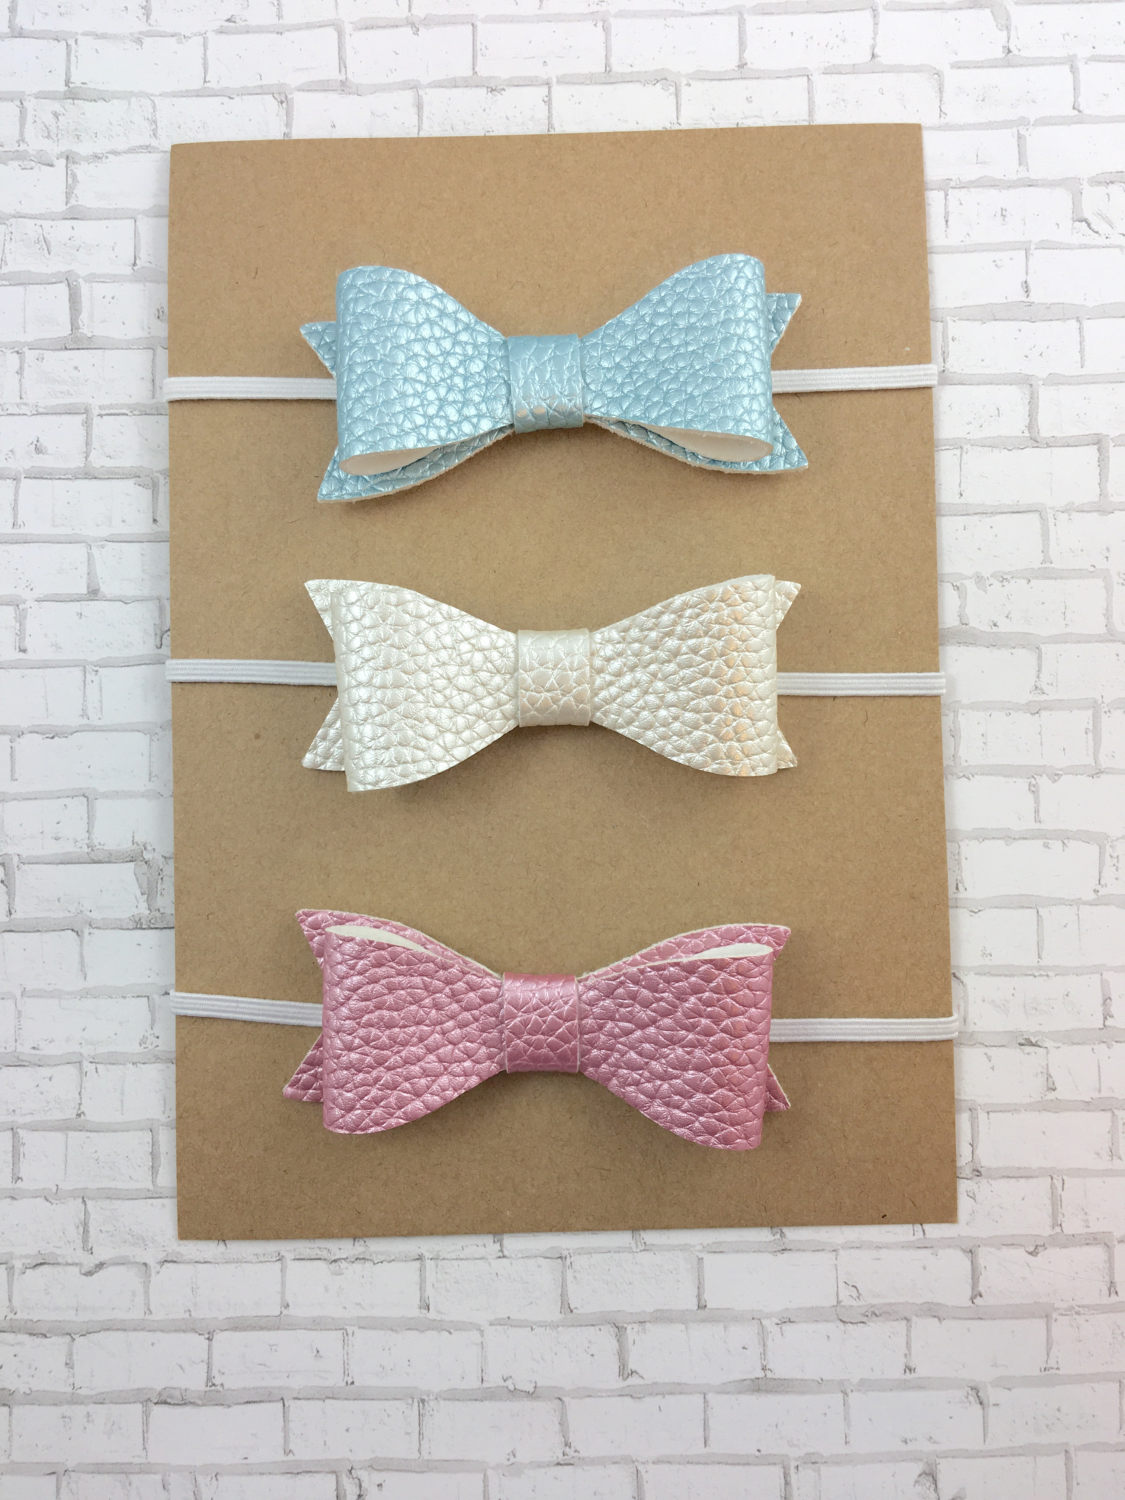 Faux Leather Bow Baby Headband Stretchy Bow Nylon Headband Blue Headband Headband Baby Bow Blue Bow Glitter Bow